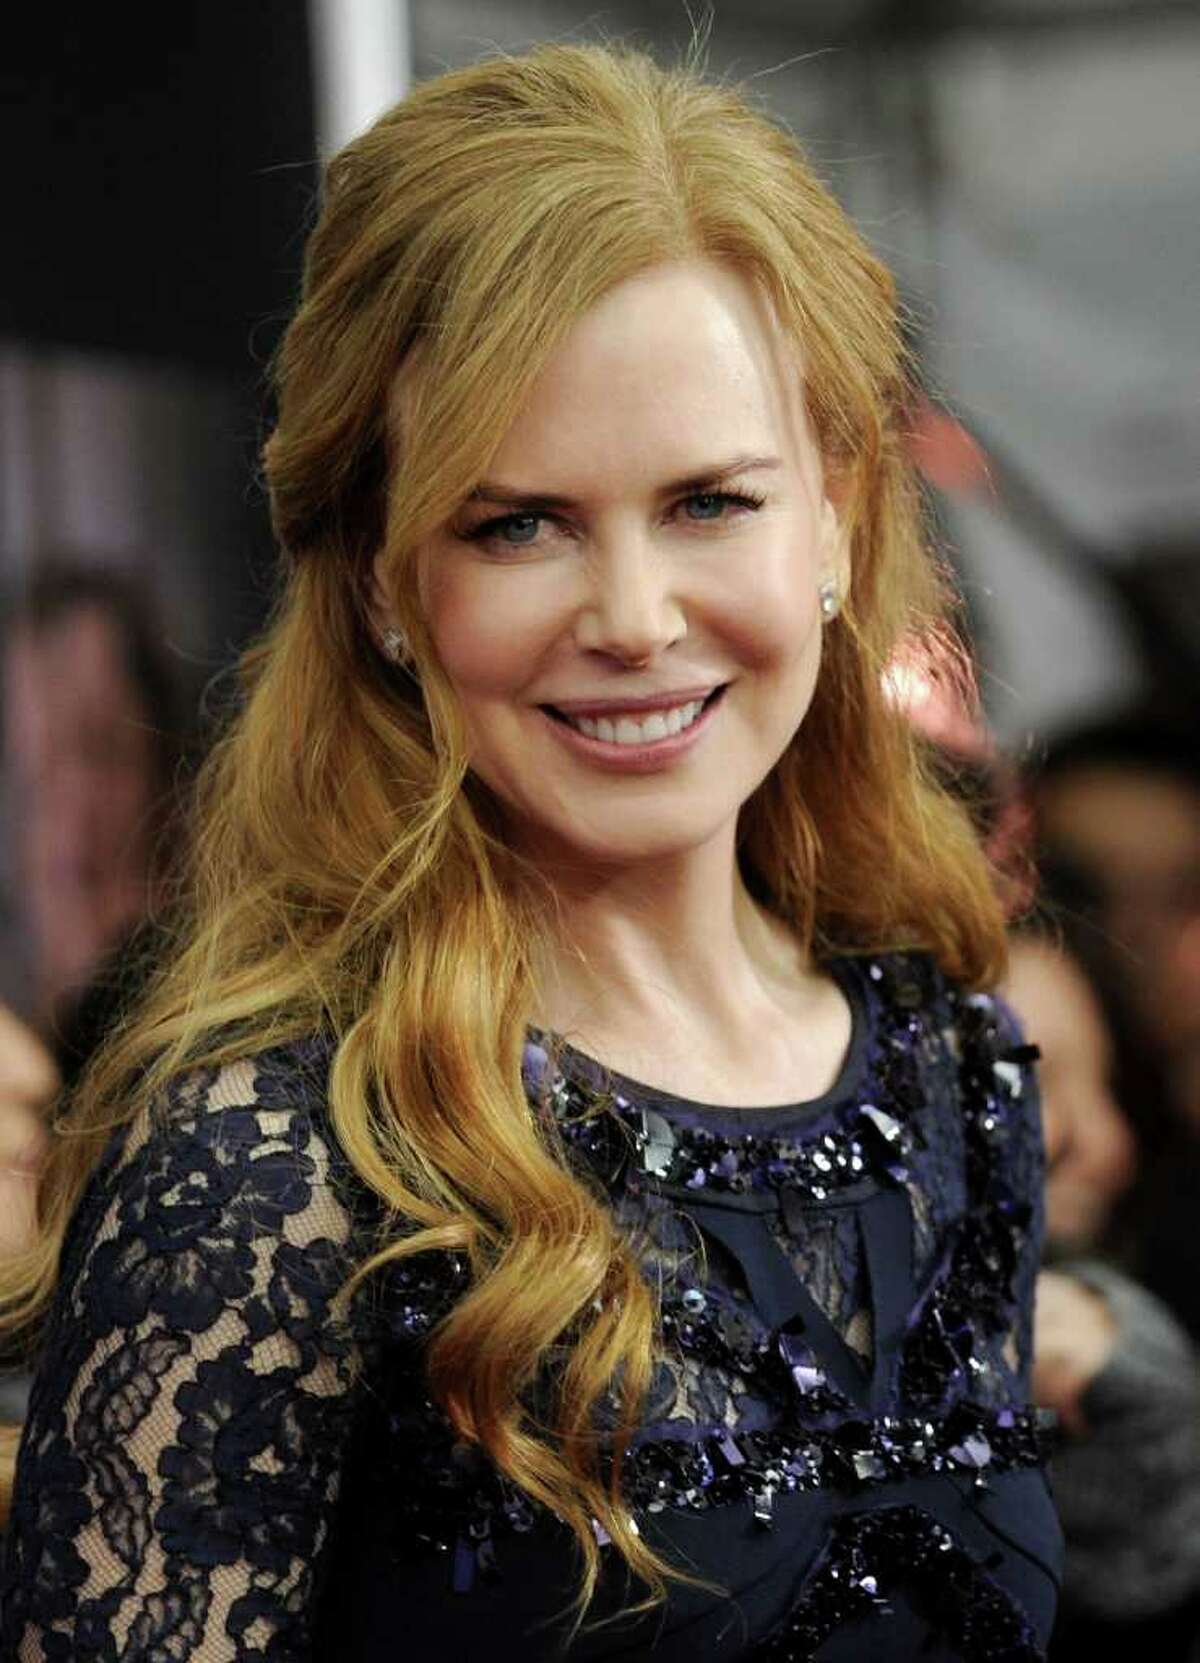 Actress Nicole Kidman attends the premiere of 'Rabbit Hole' at the Paris Theatre on Thursday, Dec. 2, 2010 in New York. (AP Photo/Evan Agostini)